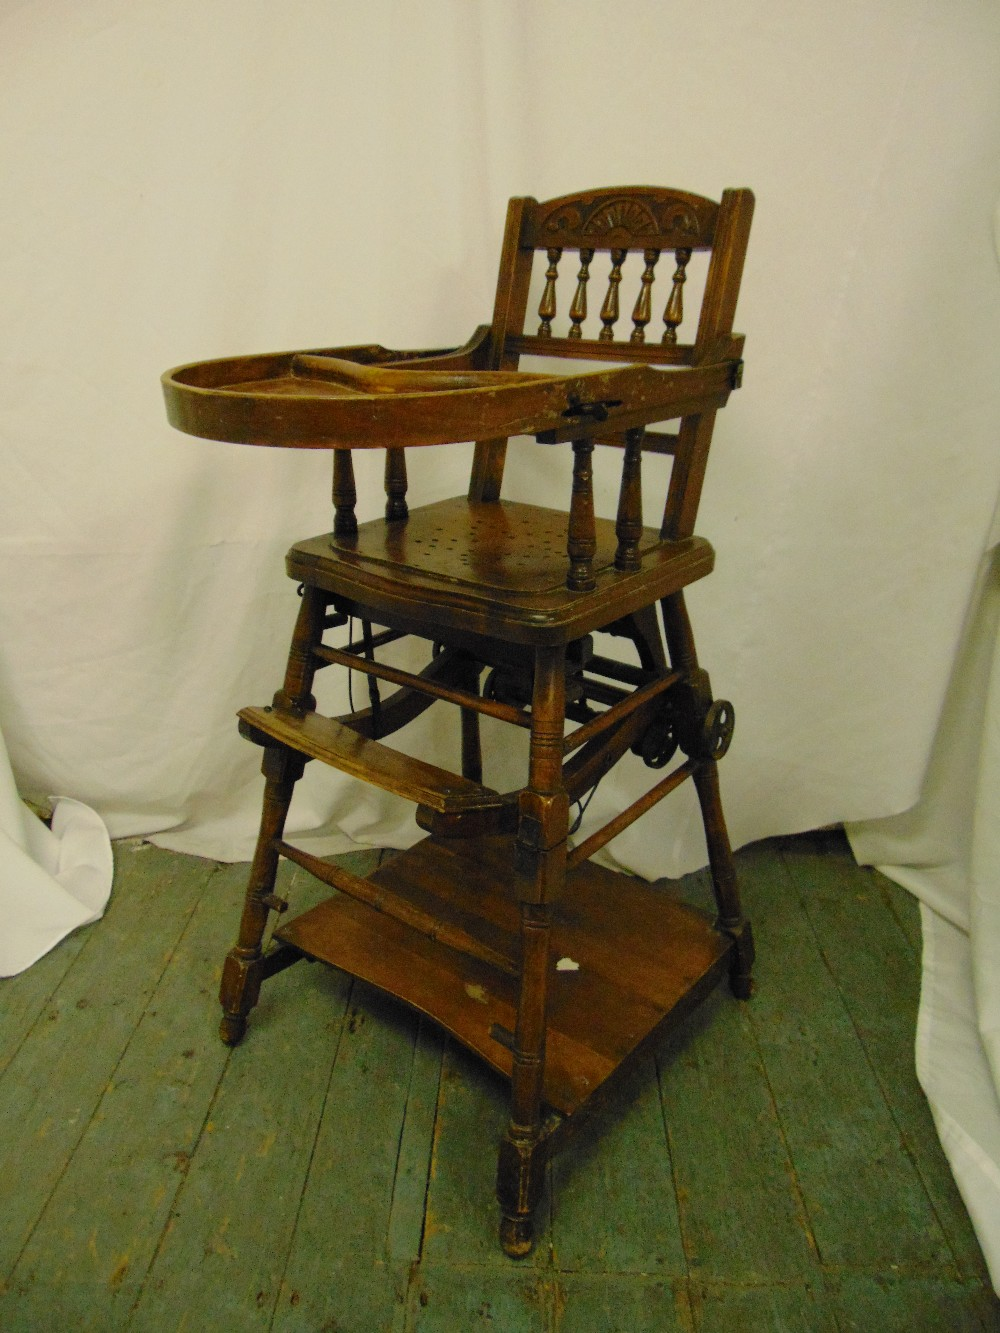 Lot 36 - An Edwardian oak metamorphic high chair on four turned cylindrical supports